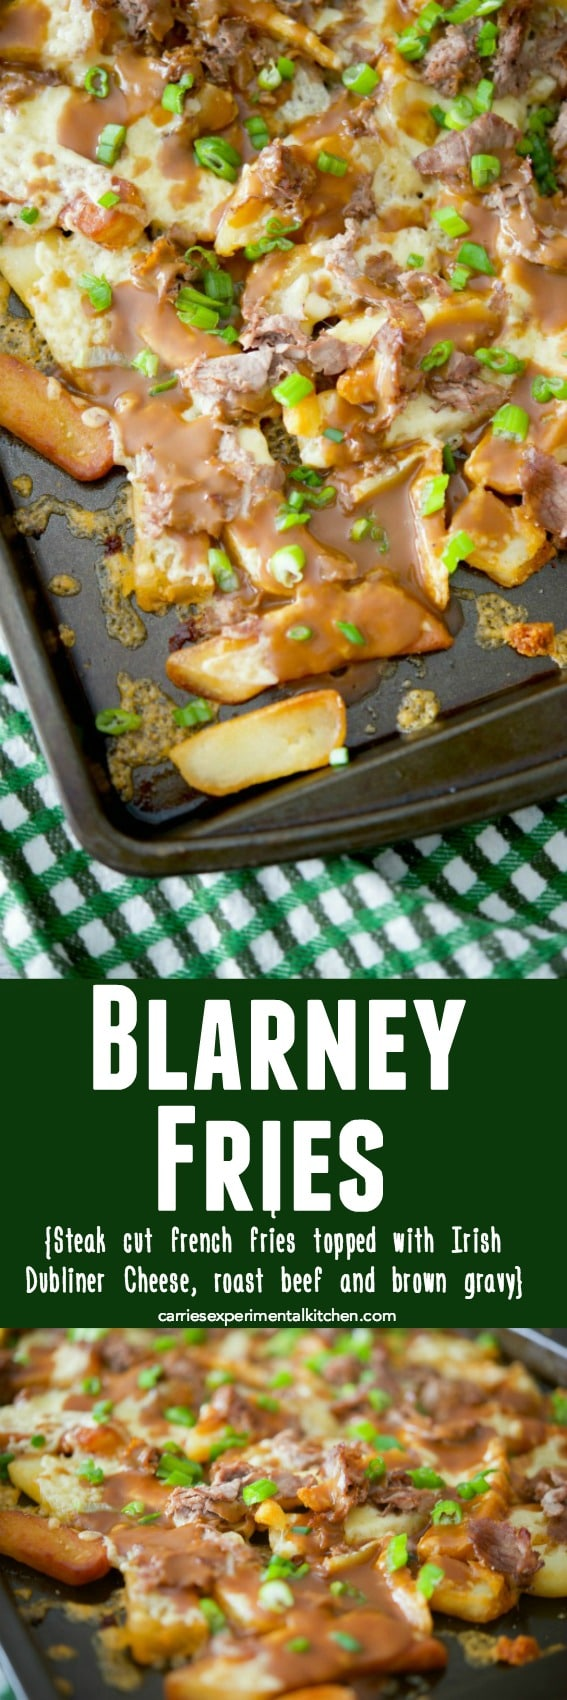 Blarney Fries are my version of an Irish Poutine made with steak cut french fries, Irish Dubliner cheese, shaved roast beef; then topped with brown gravy. #frenchfries #potatoes #poutine #irish #stpatricksday